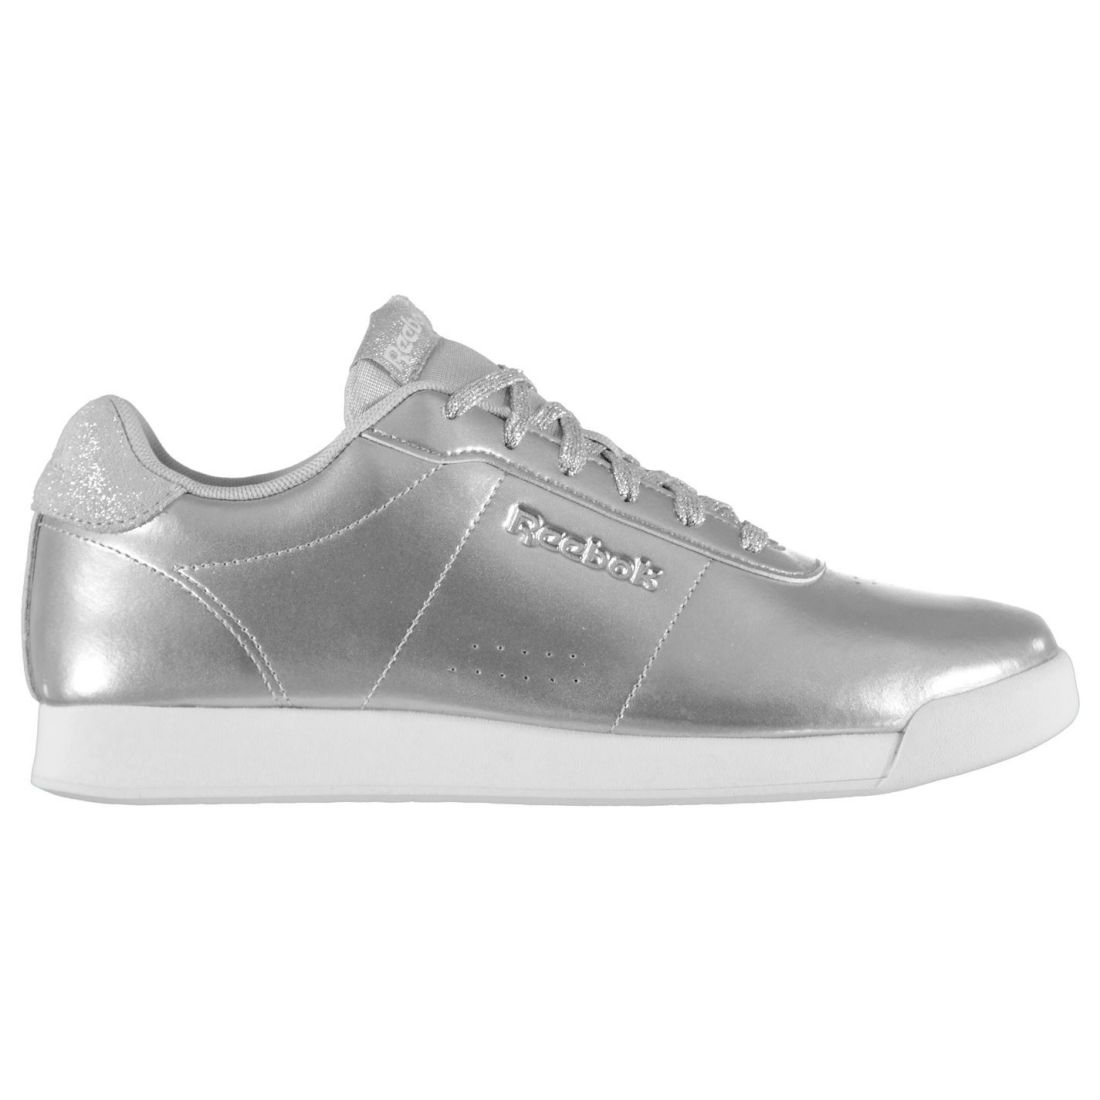 9596efc356 Details about Reebok Womens RoyalCharm Trainers Canvas Pumps Breathable  Lightweight Casual